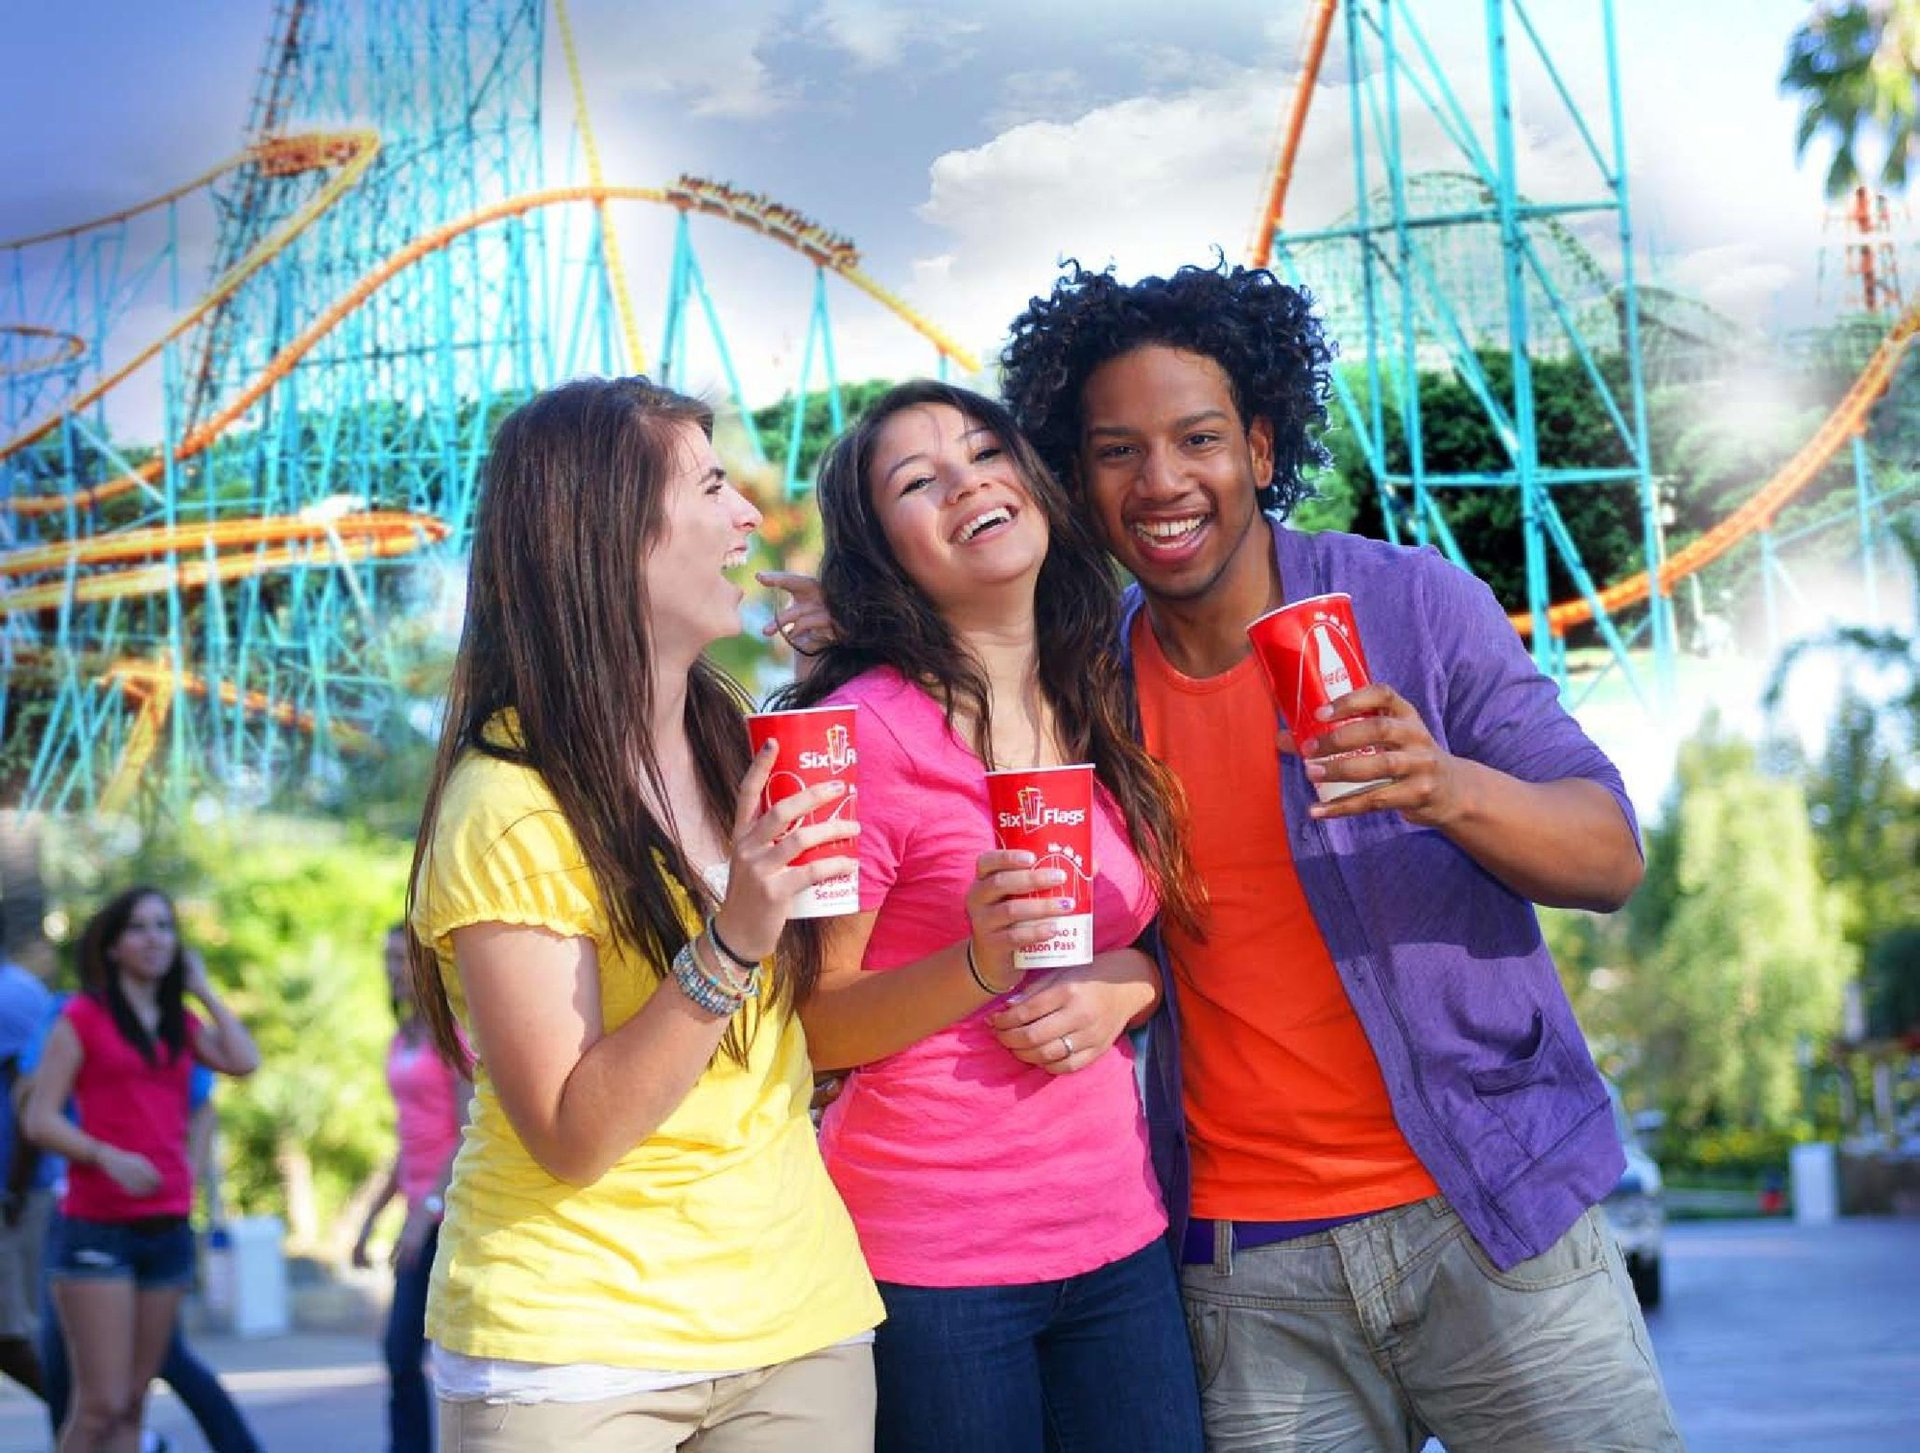 Group of friends smiling and laughing with roller coaster in the background